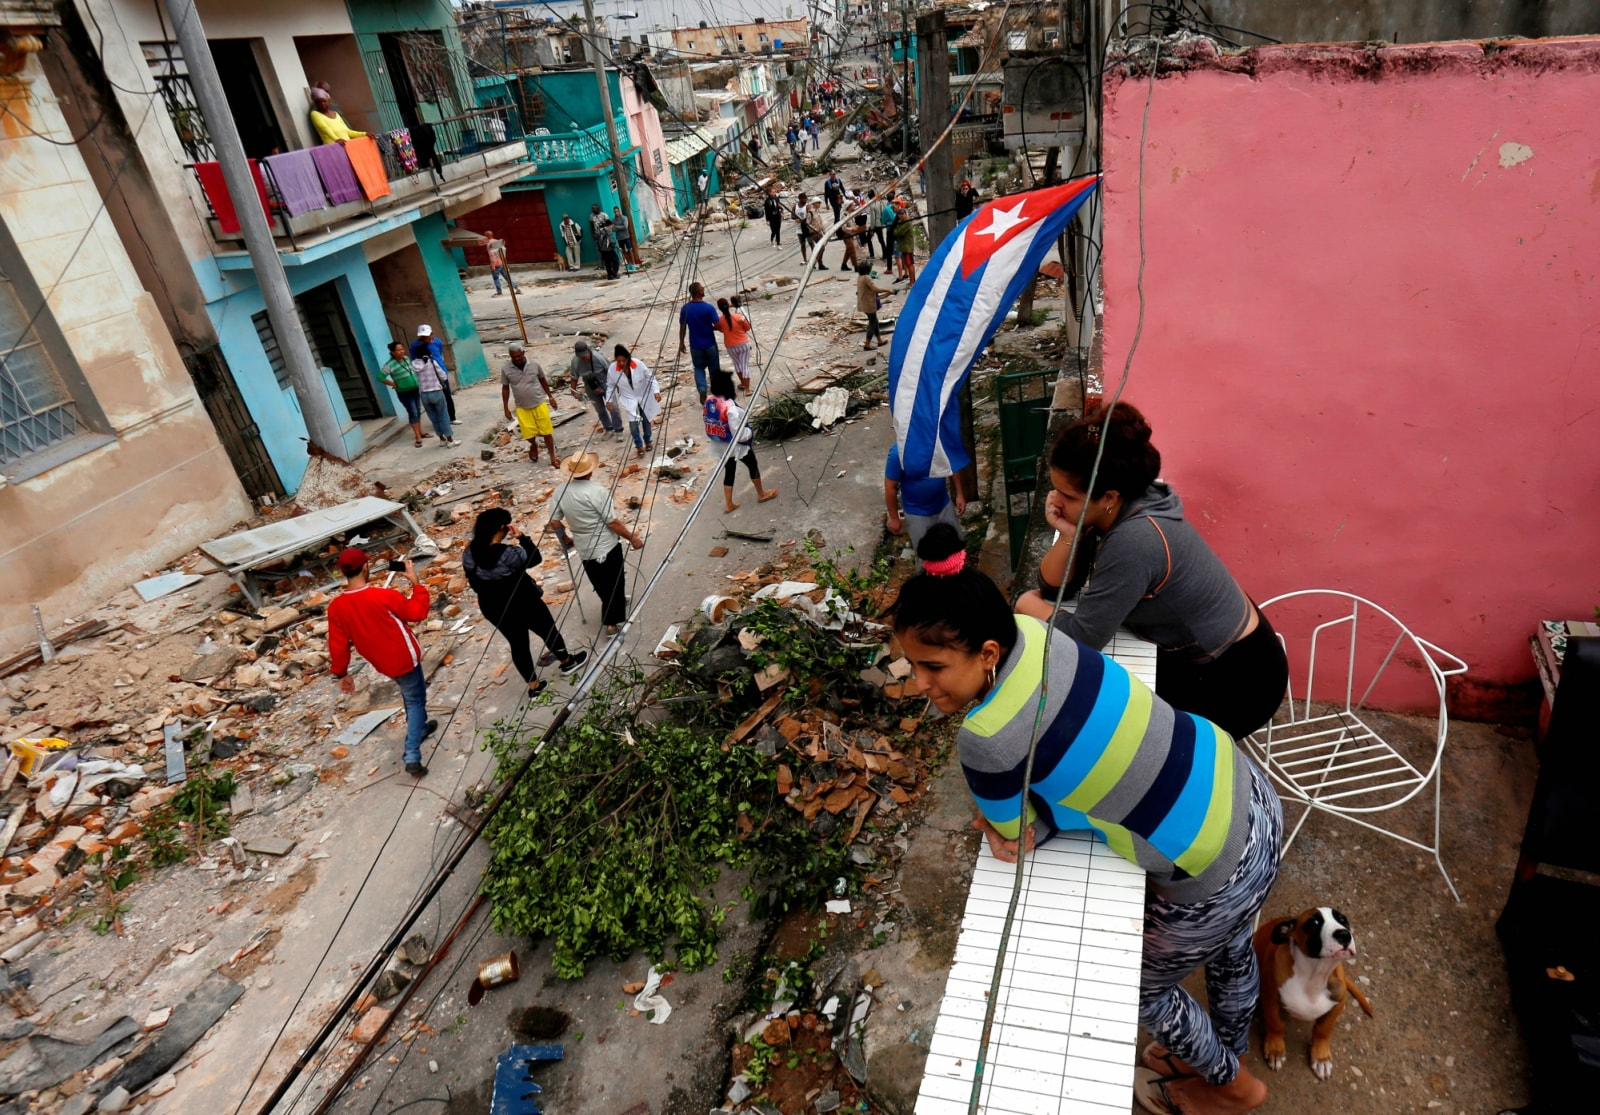 People look on as others walk past debris after a tornado ripped through a neighbourhood in Havana, Cuba January 28, 2019. REUTERS/Stringer